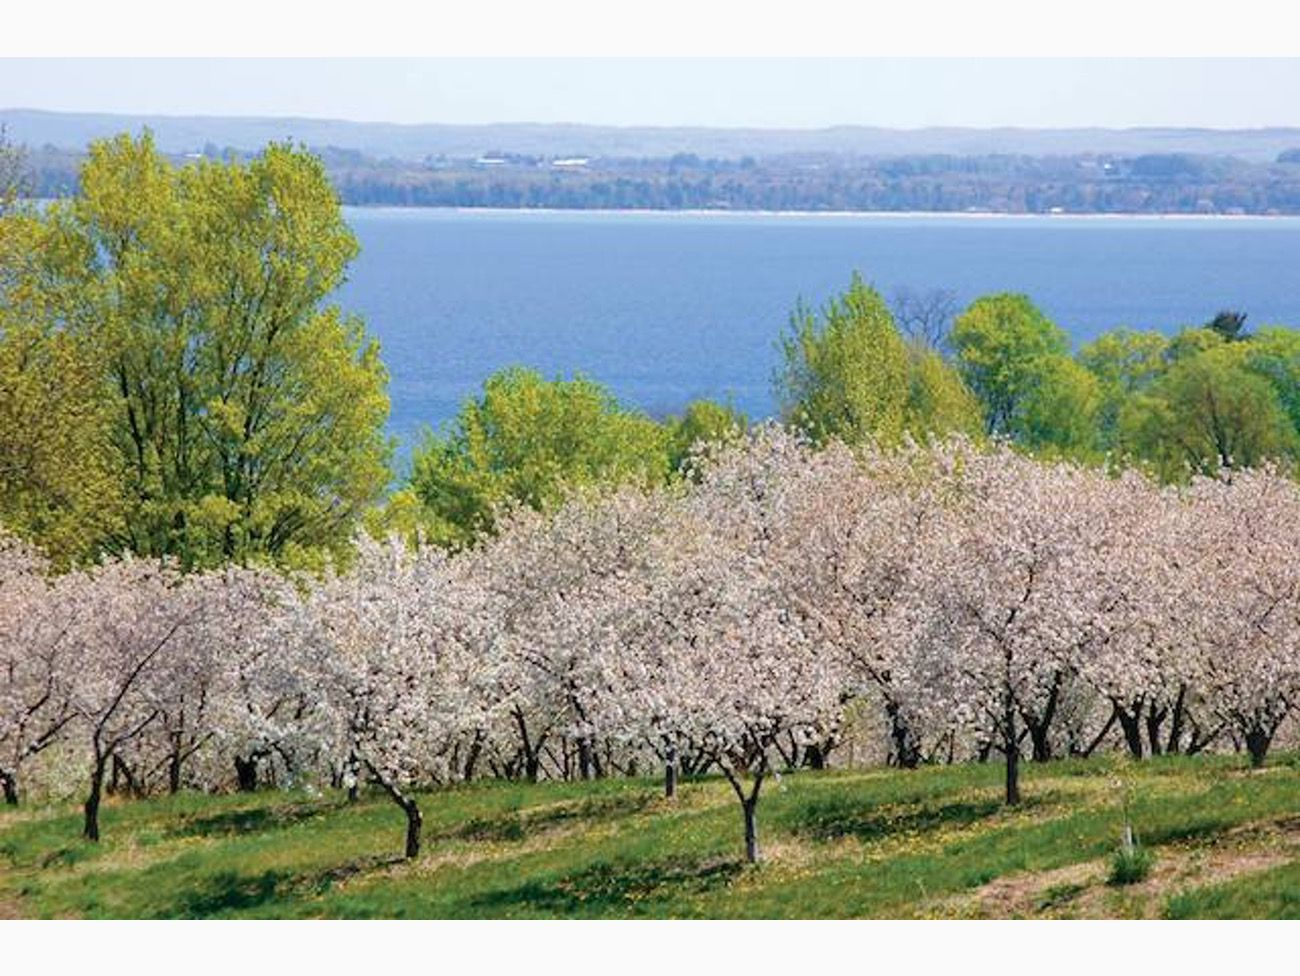 12 Places To See Cherry Blossoms In The United States Traverse City Michigan Traverse City Michigan